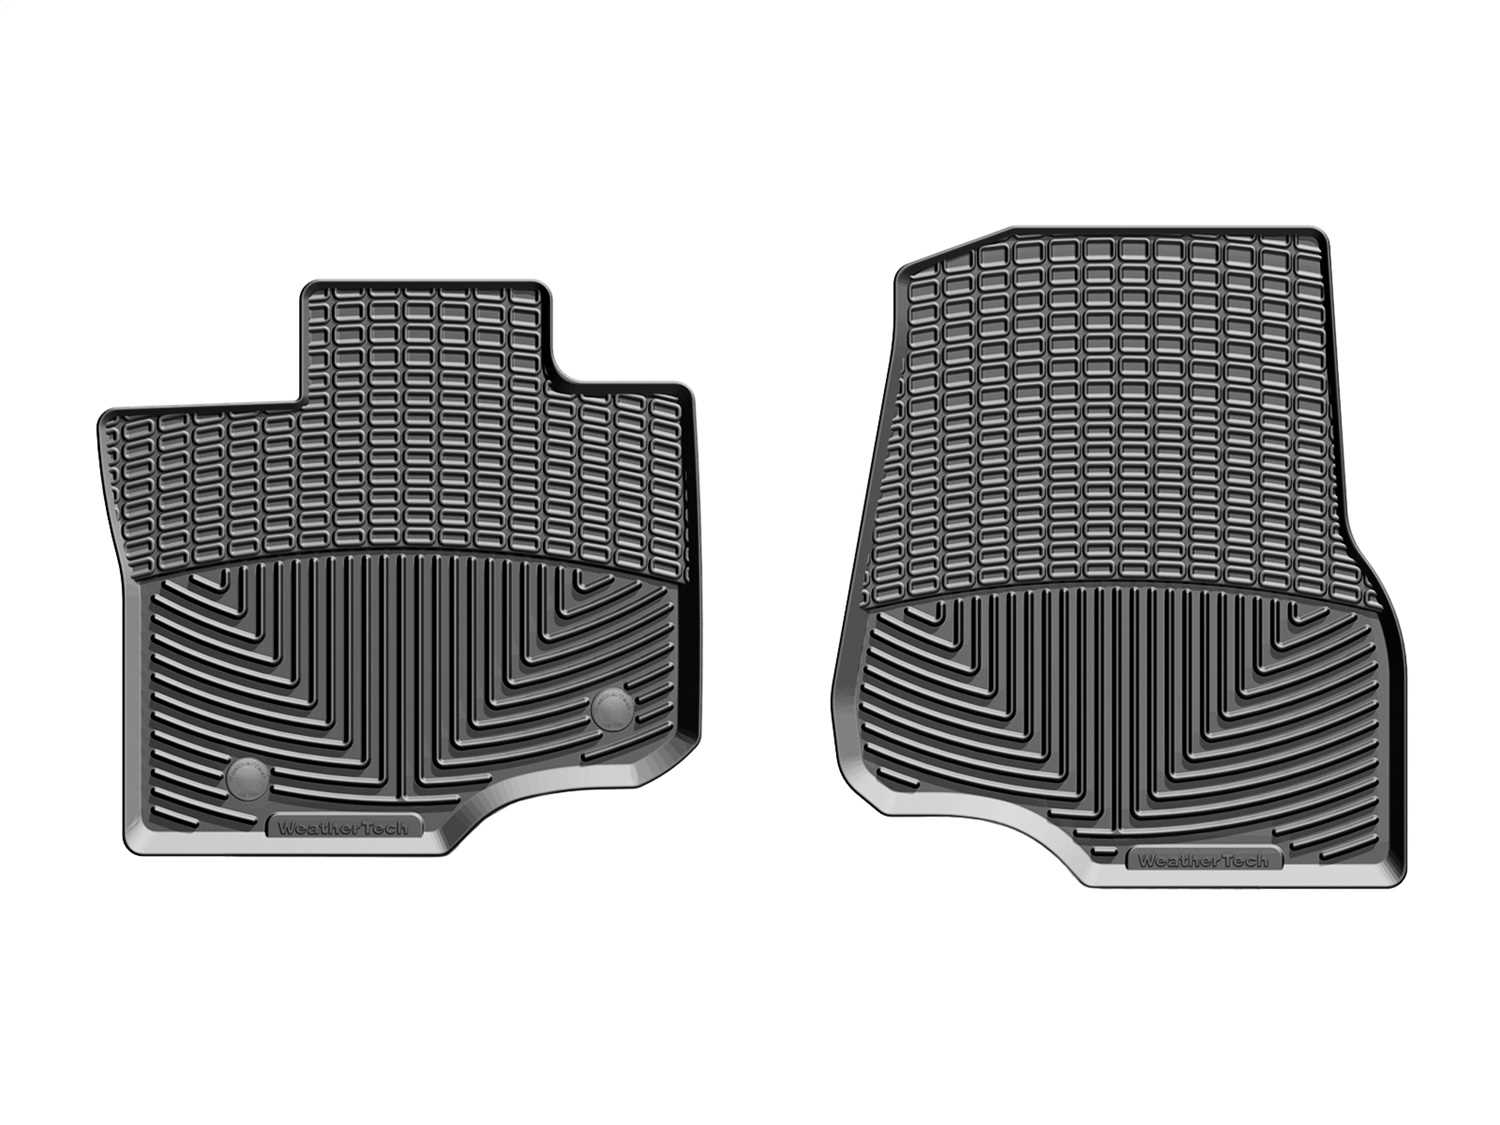 W345 WeatherTech All Weather Floor Mats